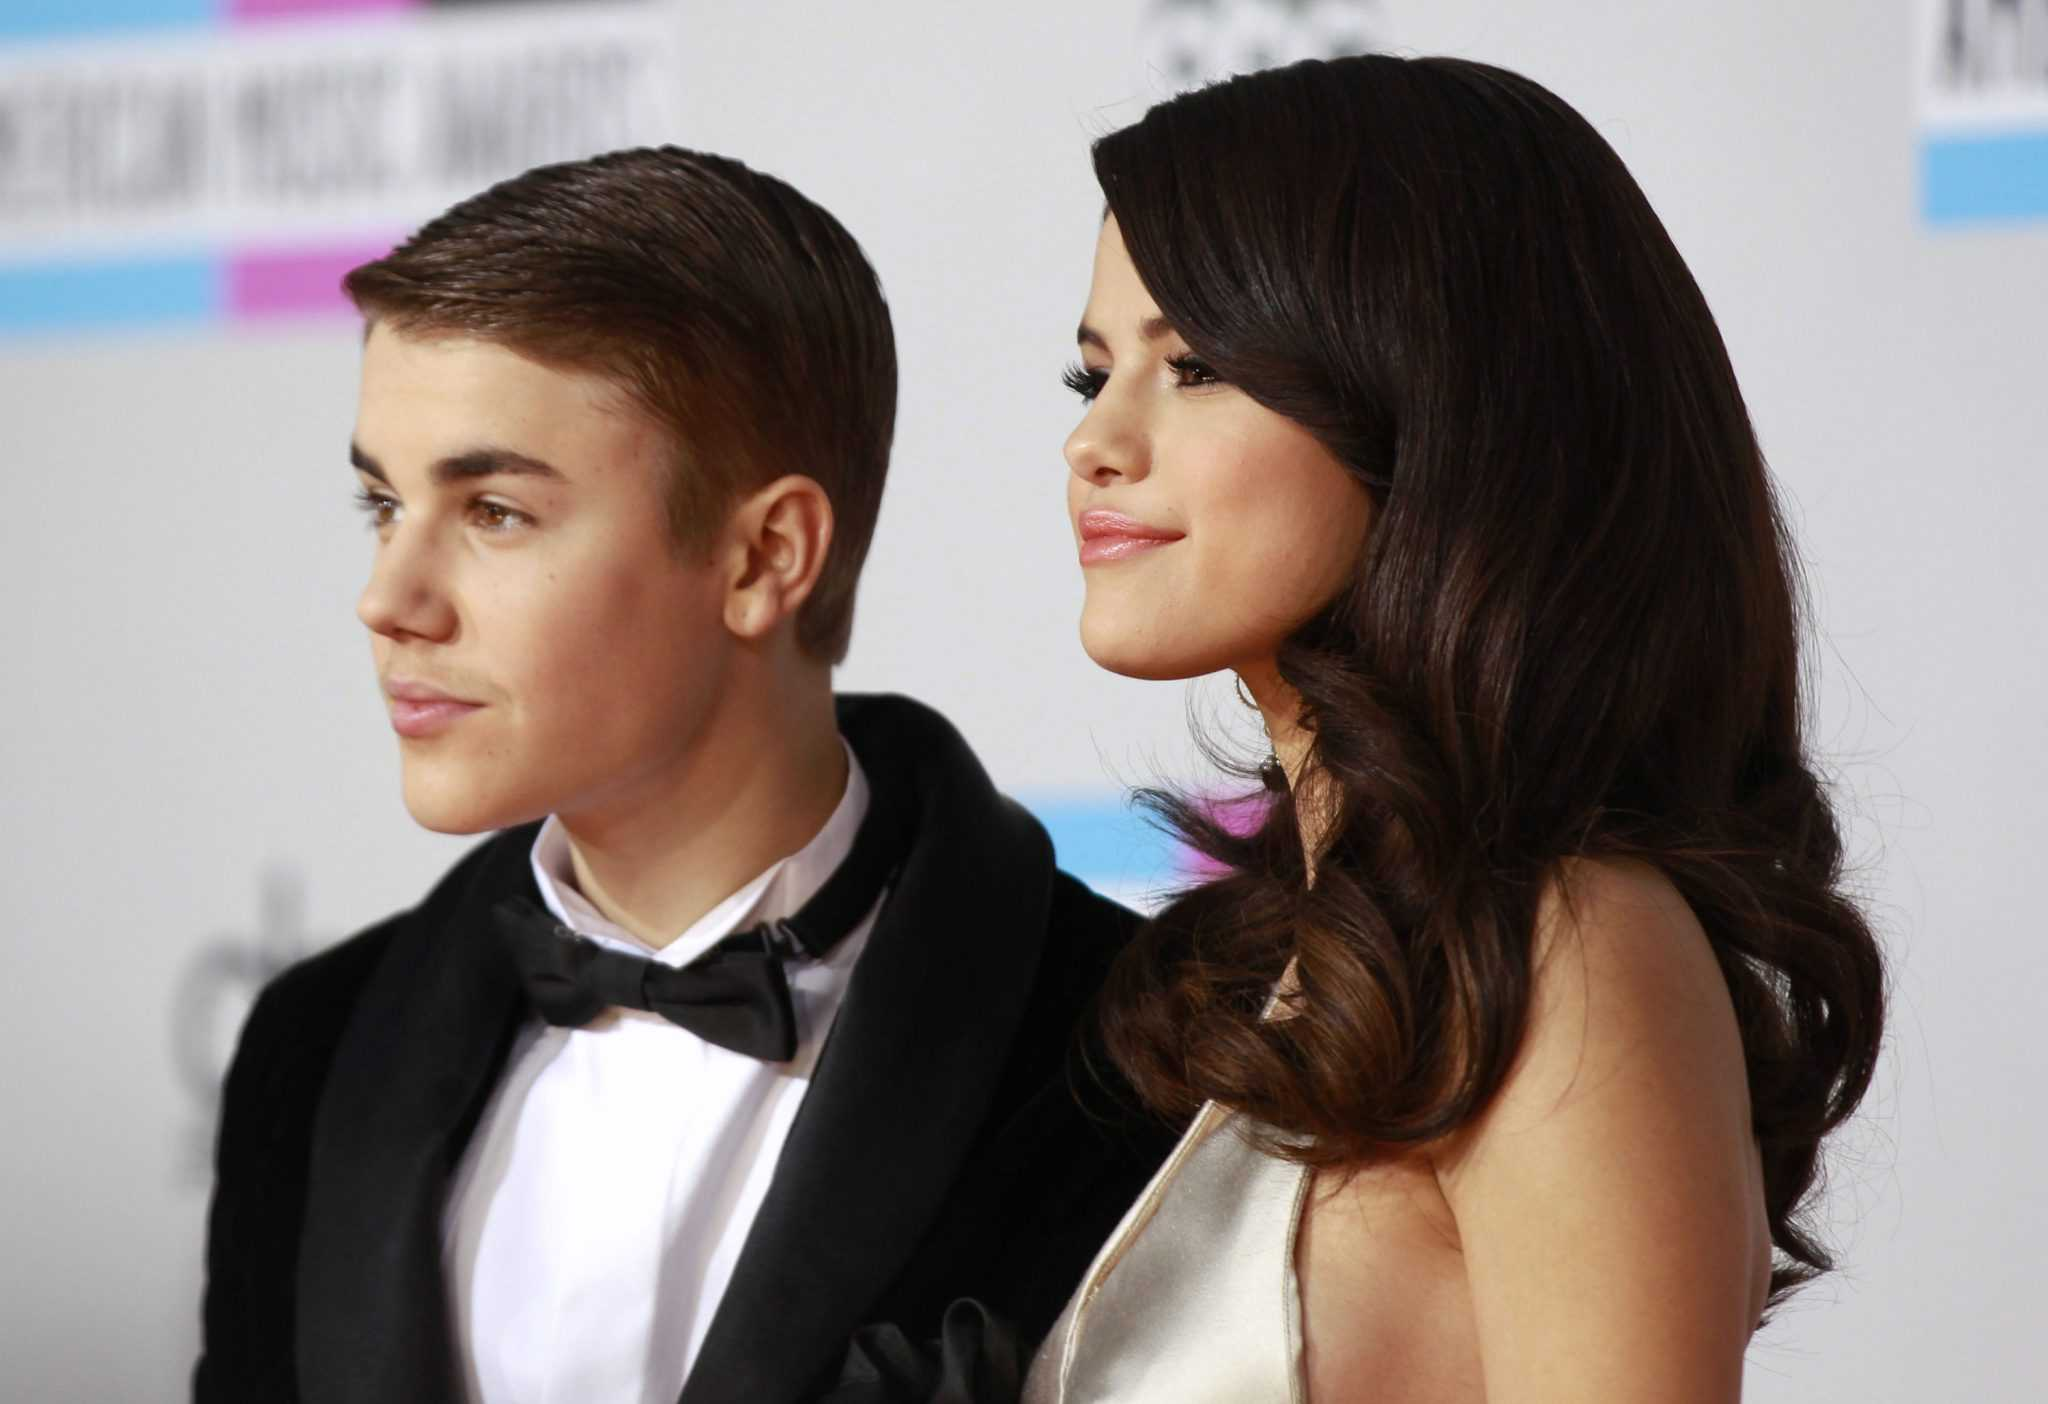 Justin Bieber Love for Selena Gomez Will Last Forever: Gomez Giddy with the Public Admission